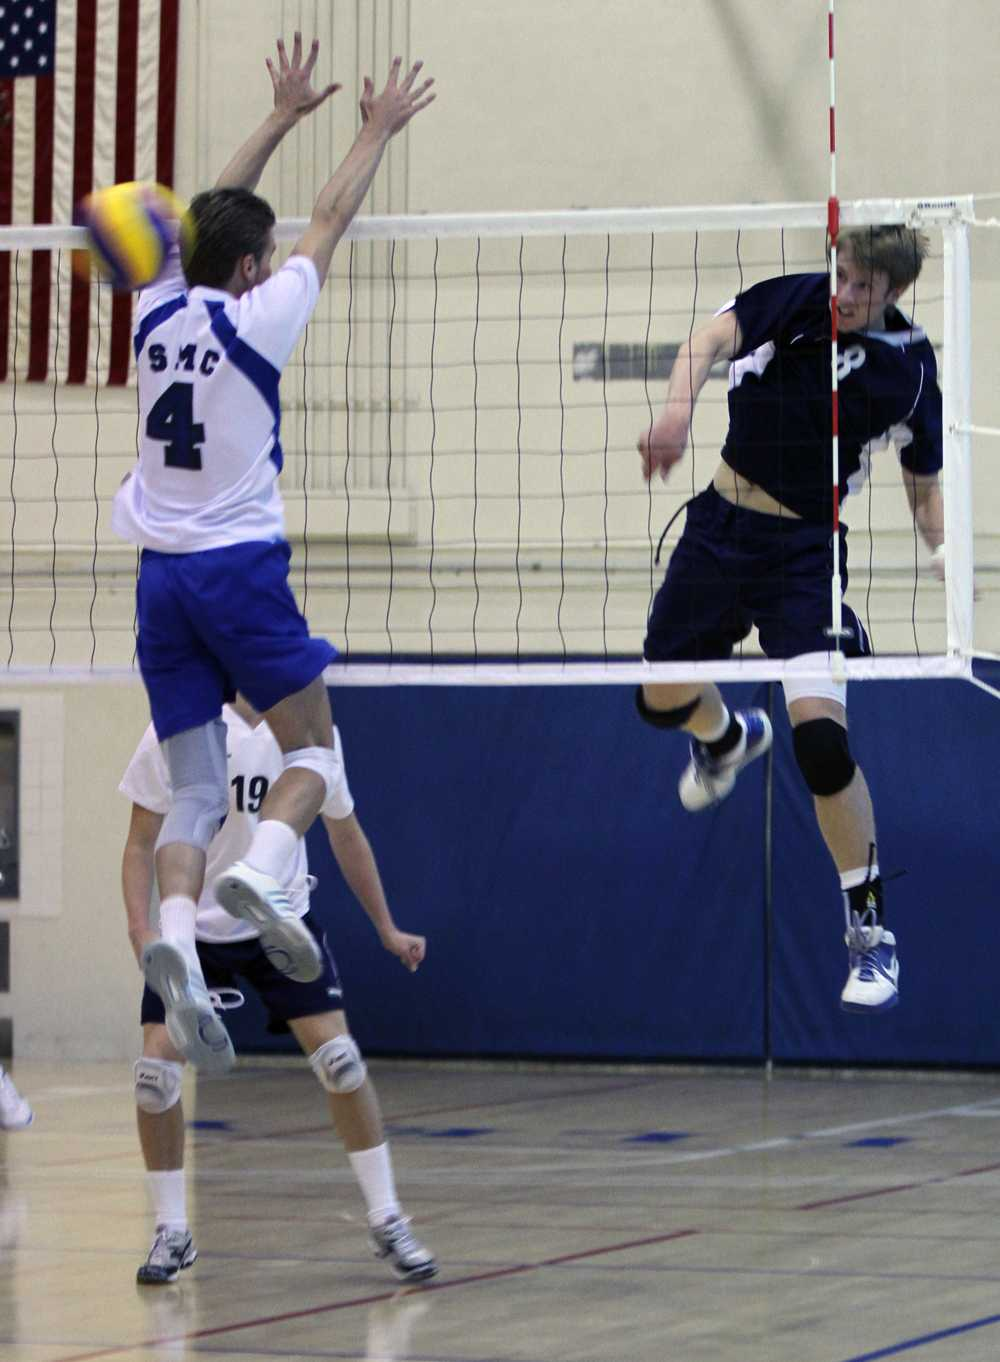 Kyle Burgoyne drills a spike past Santa Monica college on Friday at El Camino College on Friday.